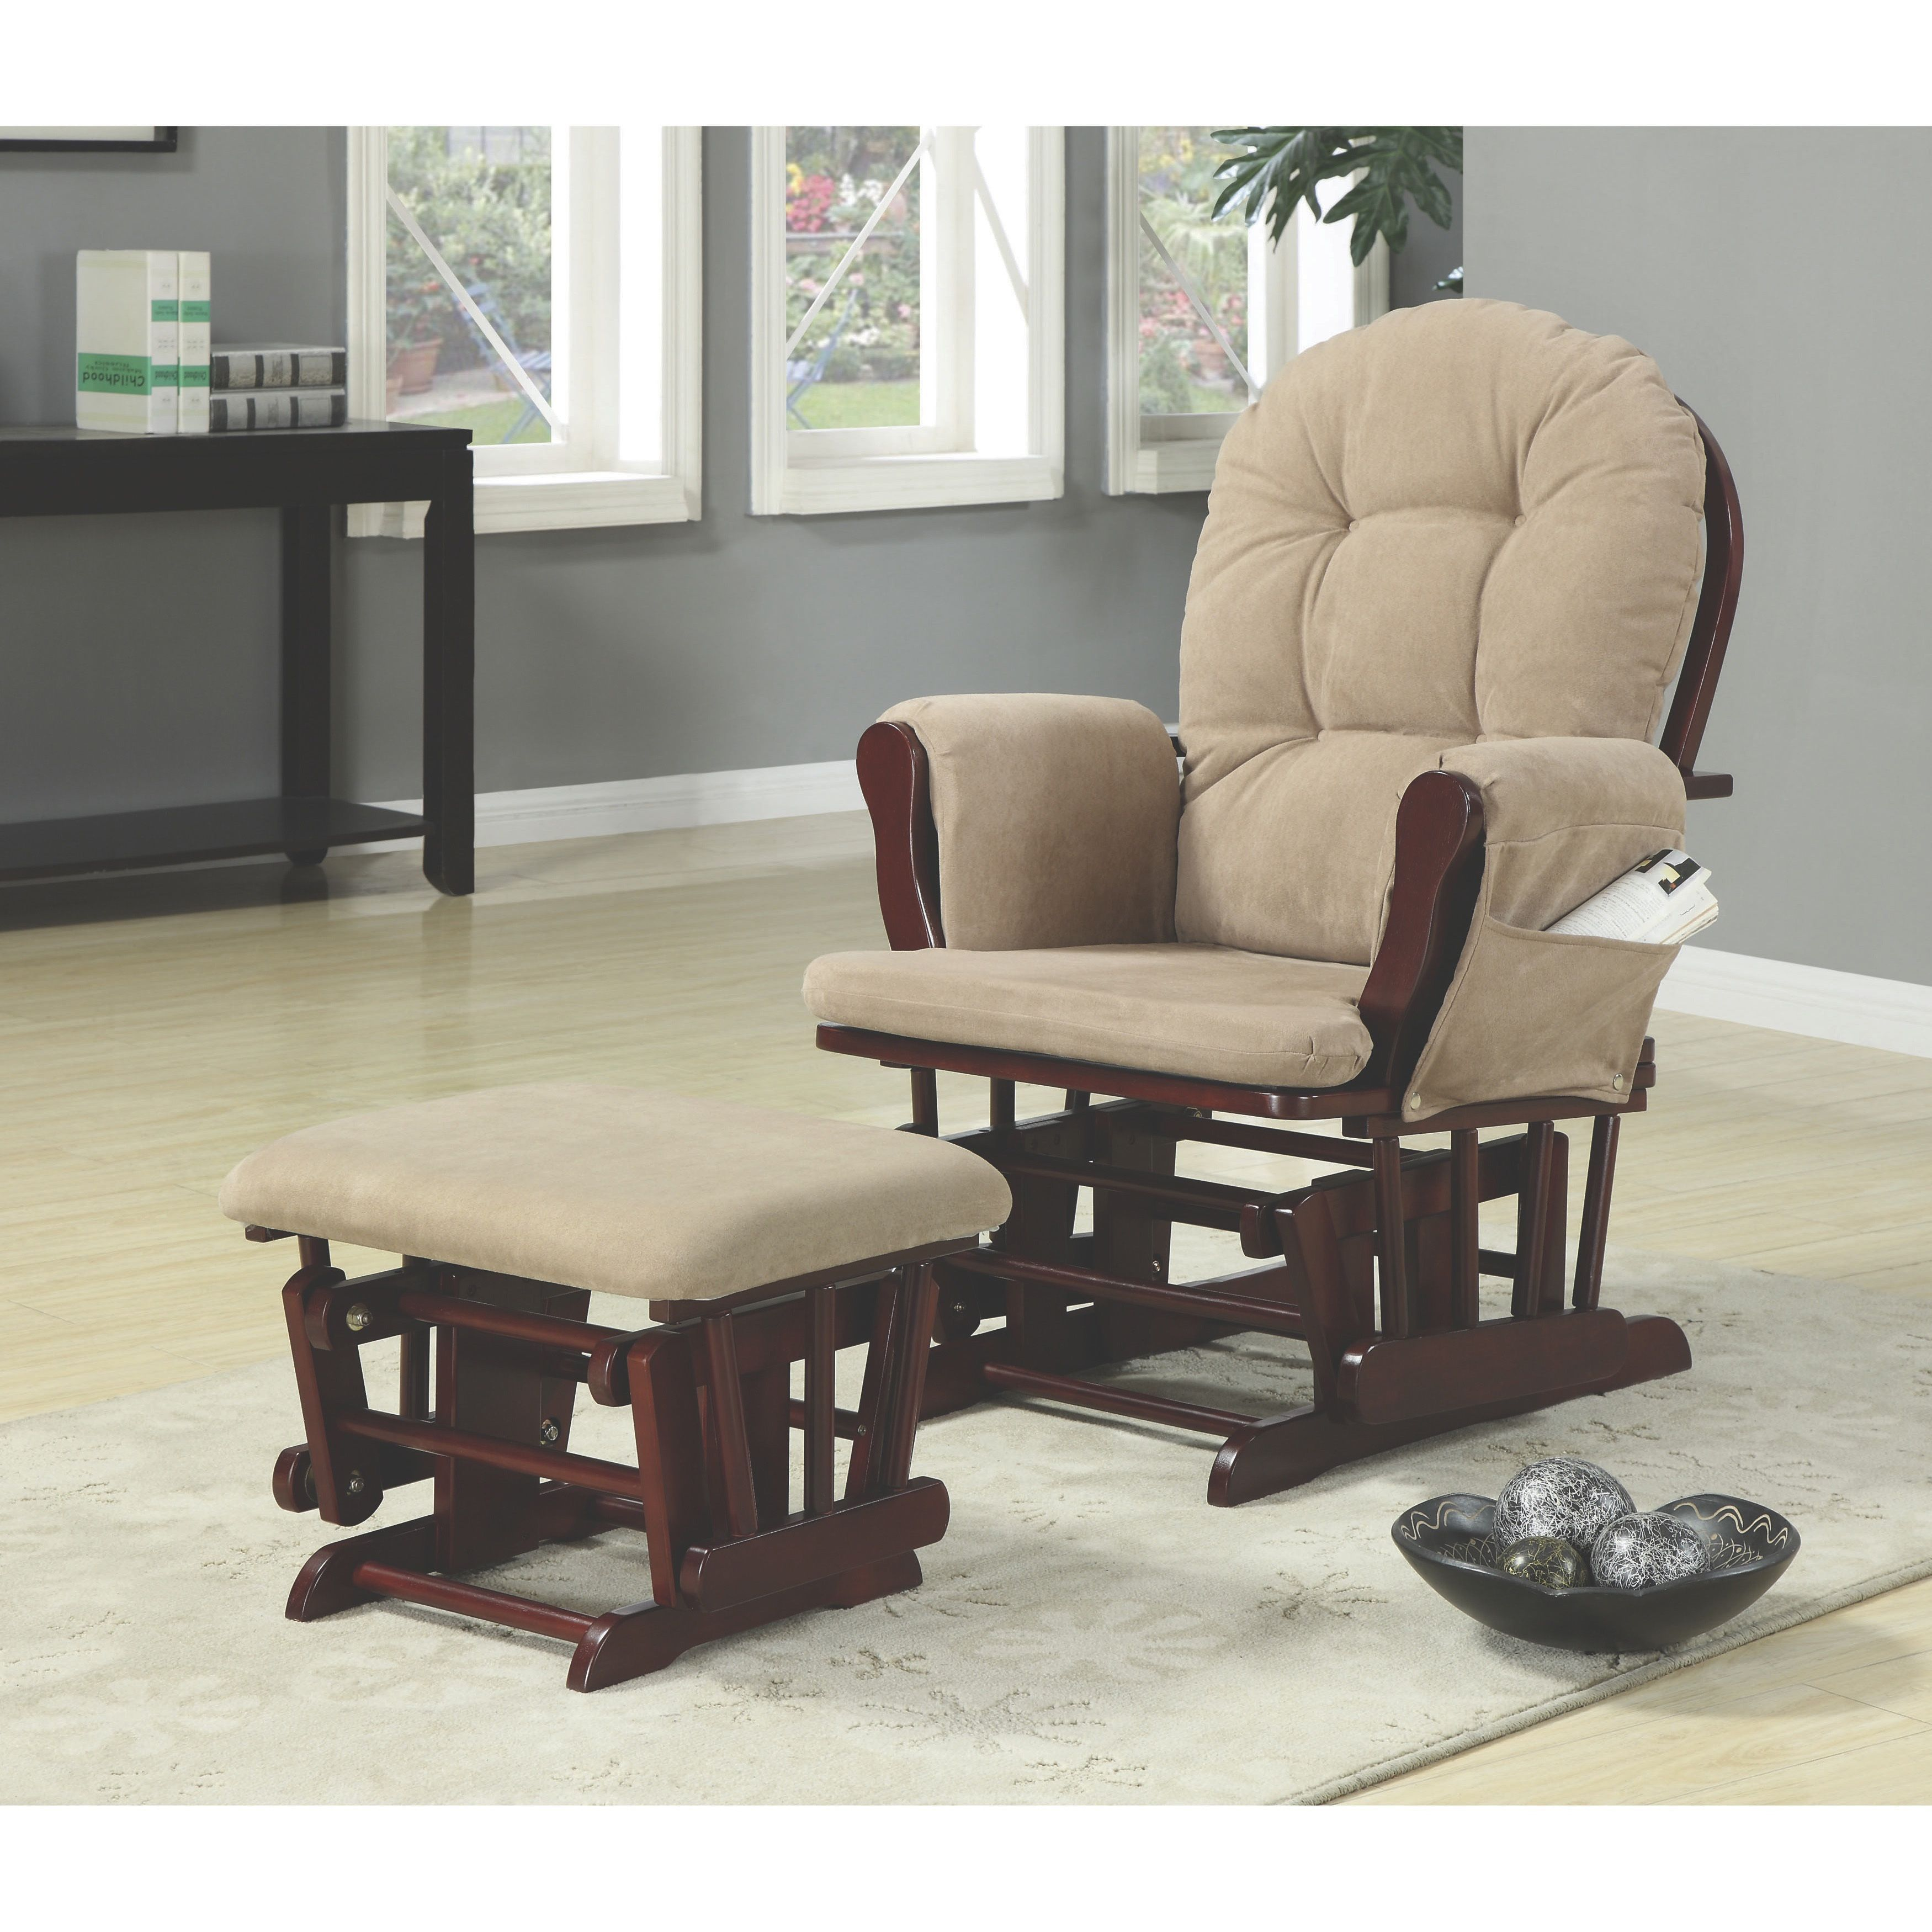 Pleasant Coaster Company Brown Microfiber Glider Recliner Chair With Ibusinesslaw Wood Chair Design Ideas Ibusinesslaworg